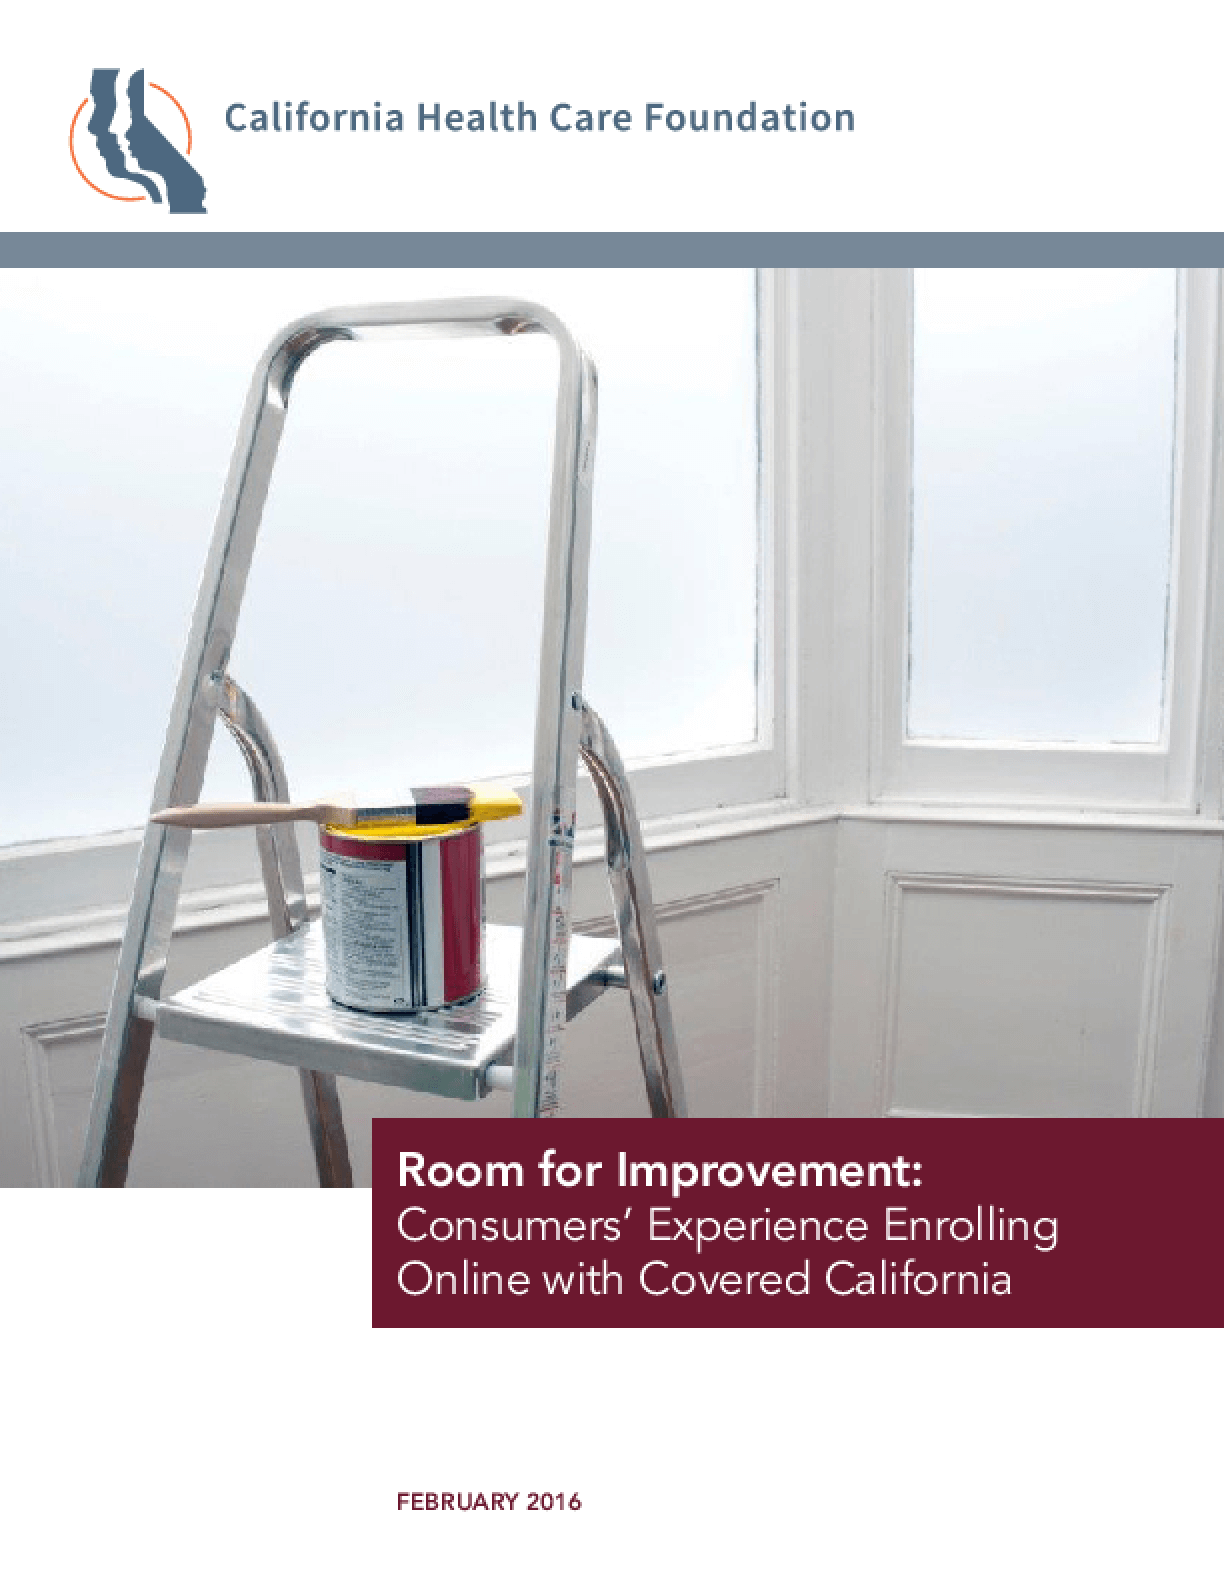 Room for Improvement: Consumers' Experience Enrolling Online with Covered California